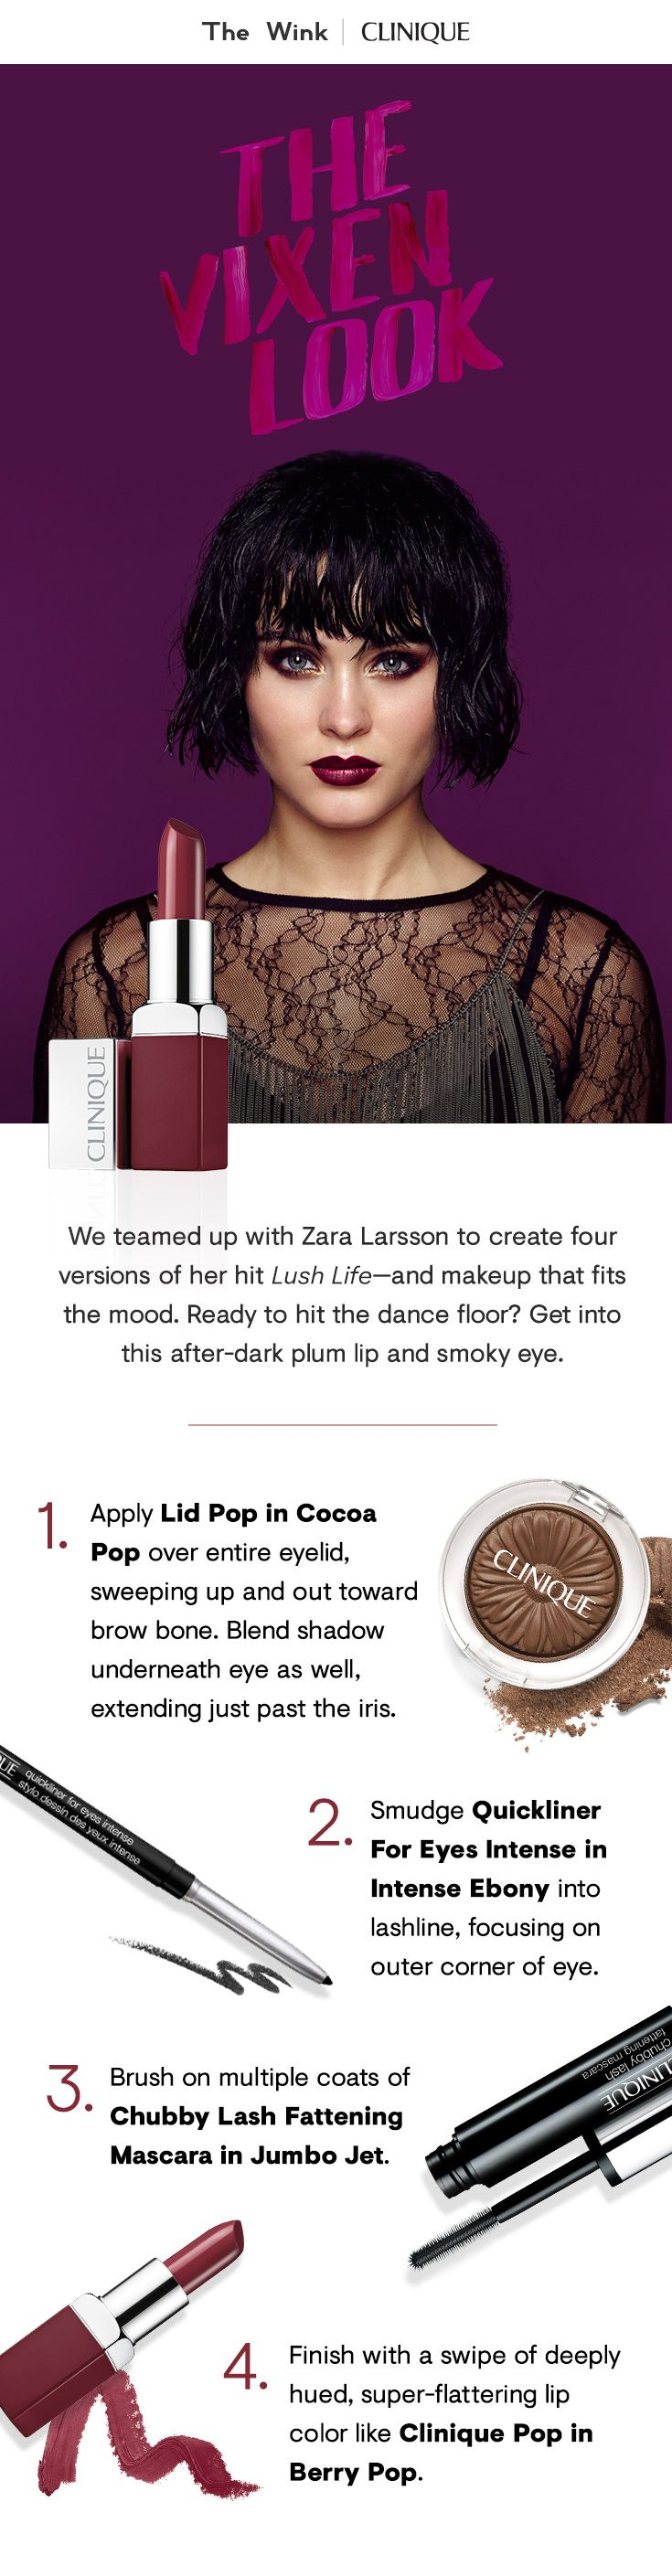 "We teamed up with Zara Larsson to create four versions of her hit ""Lush Life."" Get into this after-dark plum lip and smoky eye.  1. Apply Lid Pop in Cocoa Pop over entire eyelid, sweeping up and out toward brow bone. Blend shadow underneath eye as well.  2. Smudge Quickliner For Eyes Intense in Intense Ebony into lashline.  3. Apply multiple coats of Chubby Lash Fattening Mascara in Jumbo Jet.  4. Finish with Clinique Pop in Berry Pop."